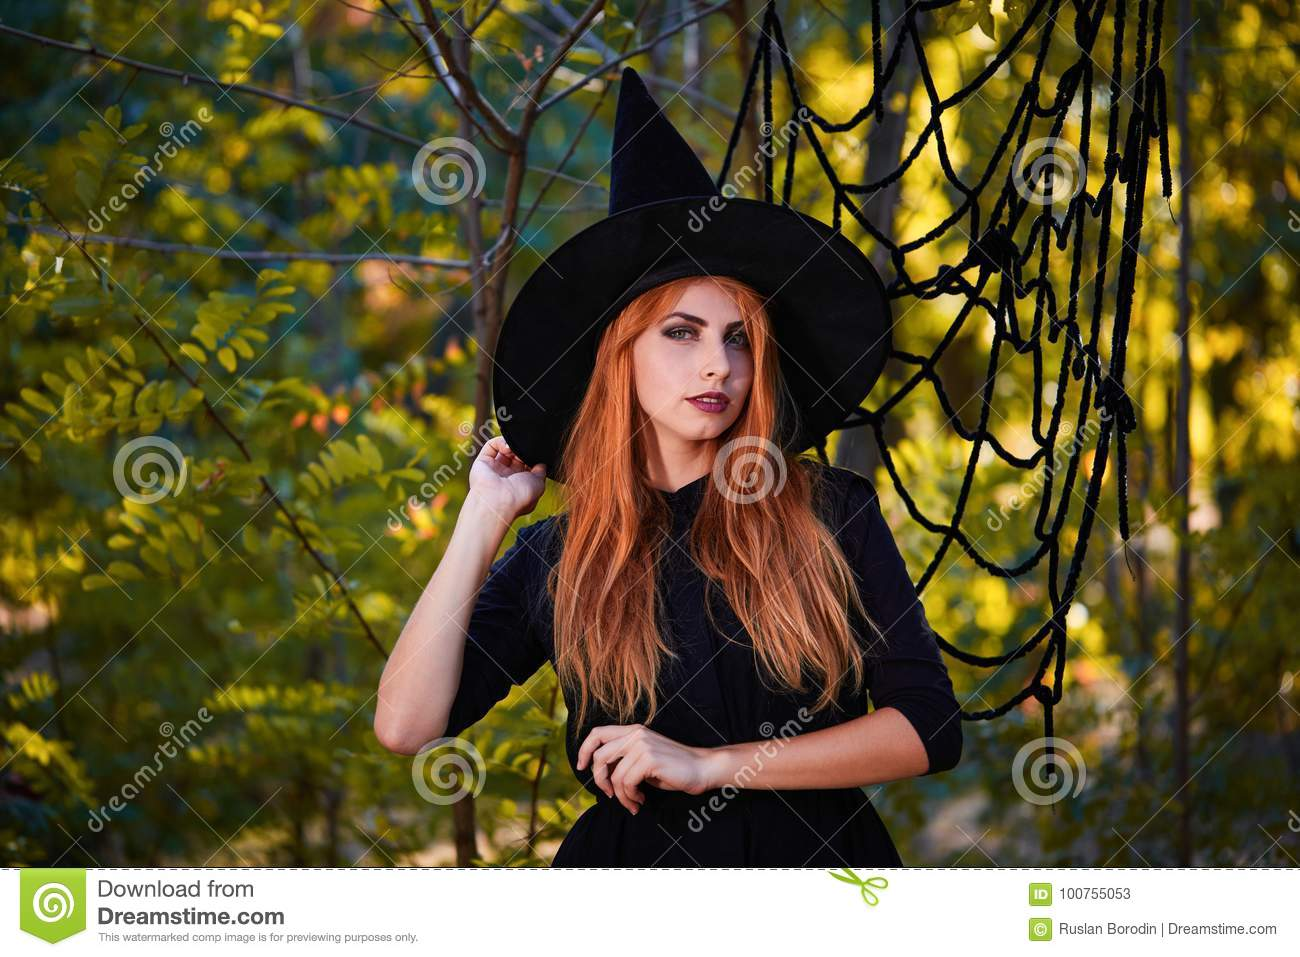 download beautiful ginger witch woman in a hat on a forest background halloween costumes concept